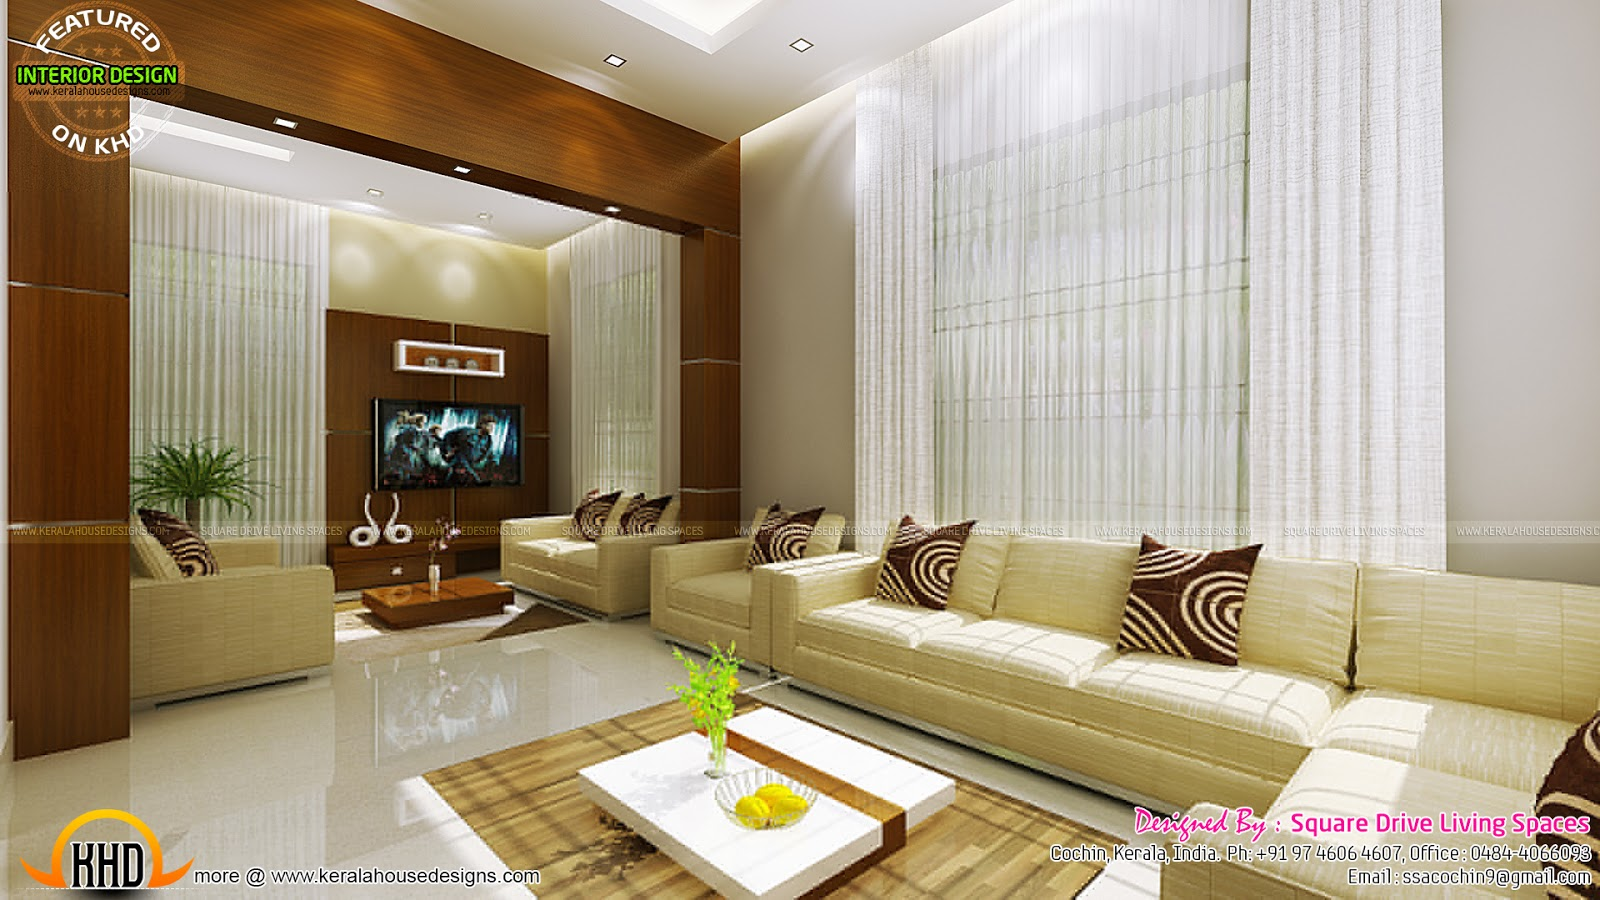 Contemporary kitchen, dining and living room - Kerala home